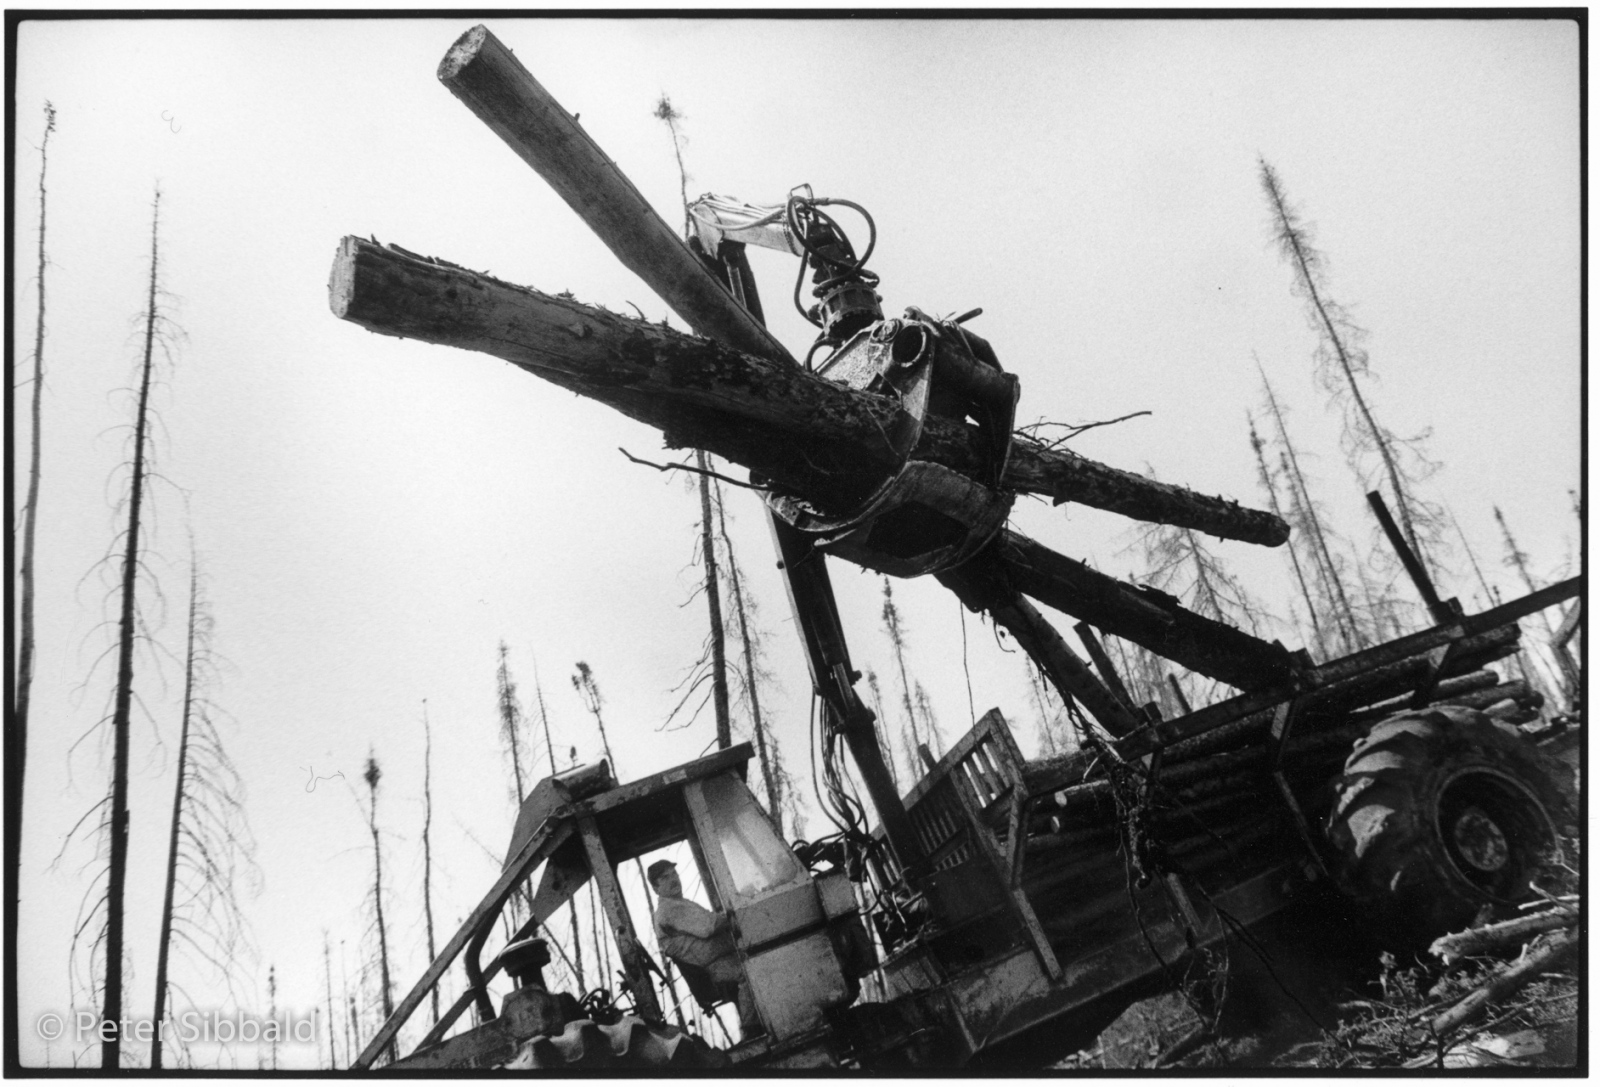 Non-Innu loggers use heavy equipment to remove timber from a forest near Sheshatshiu, Nitassinan/Labrador. The Innu argue that the land is theirs and that non-Innu business interests have no right to be there without permission from, and negotiated compensation to, the Innu. Copyright Peter Sibbald, 1990